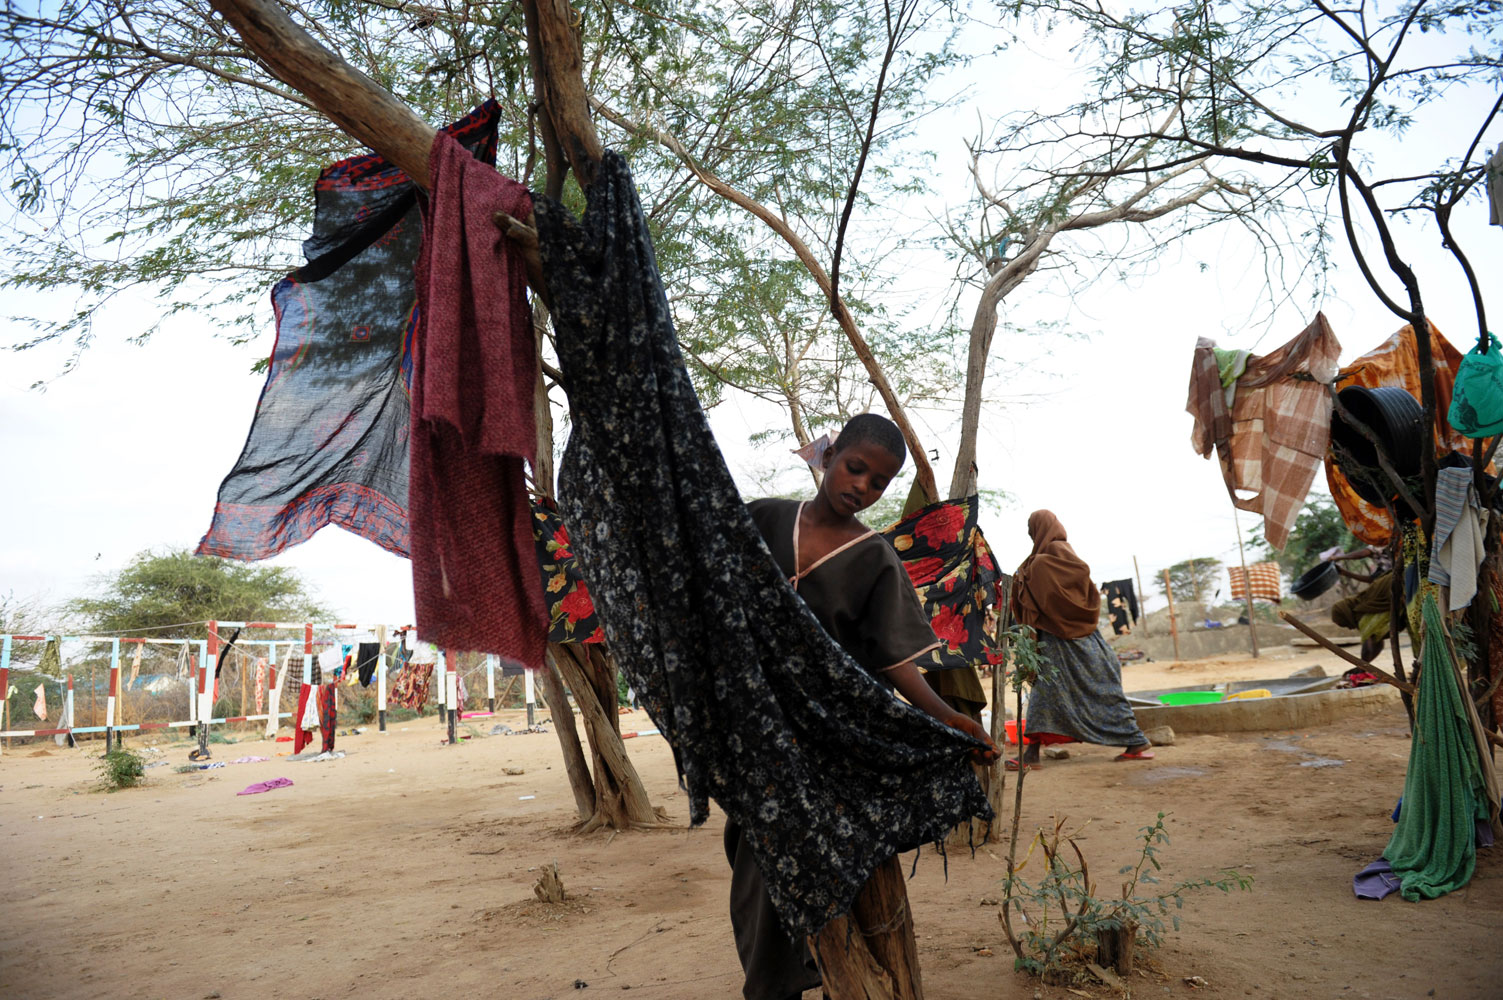 July 5, 2011. Seven-year-old Fartun Hassan hangs a cloth she had just washed on a tree at a Medecins Sans Frontieres (Doctors Without Borders) hospital at the Dadaab refugee camp in northeastern Kenya.